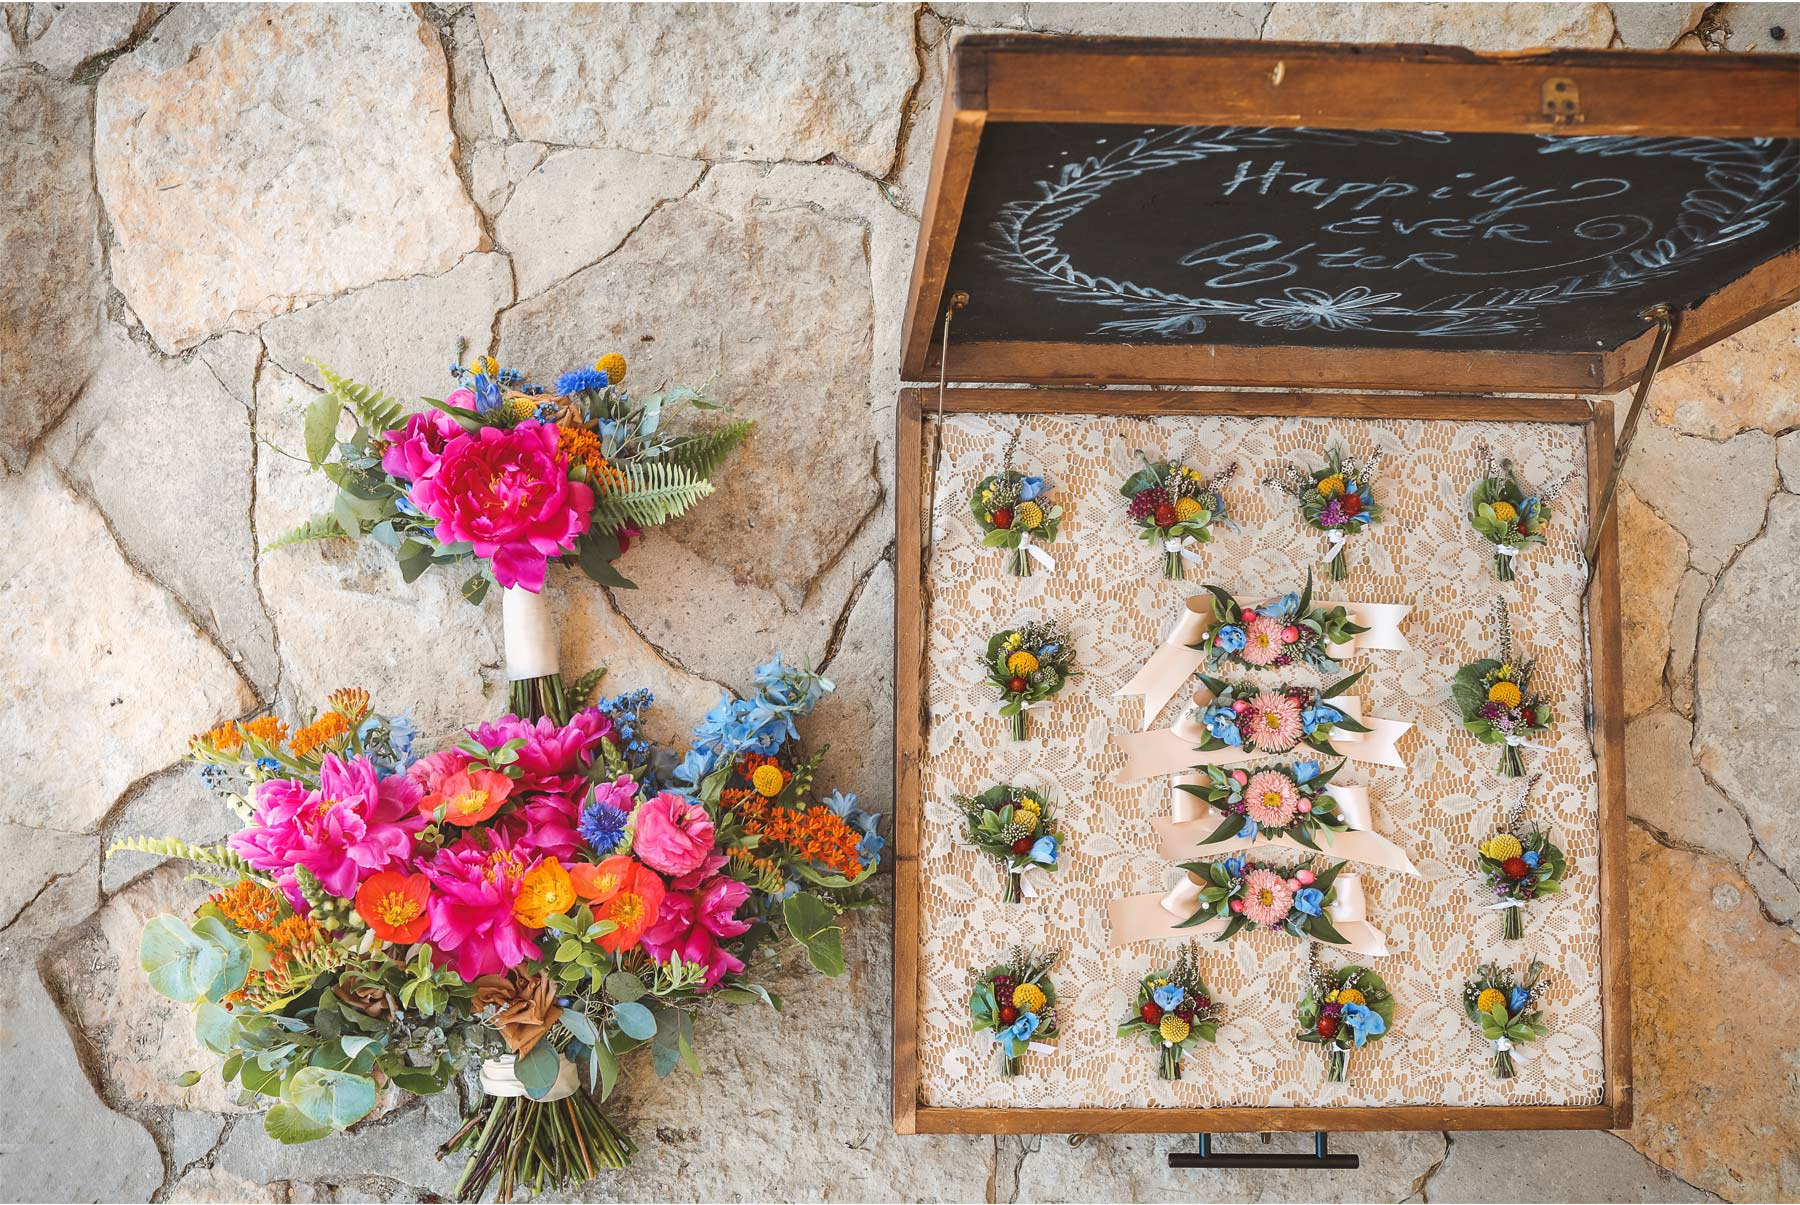 03-Vick-Photography-Rochester-Minnesota-Mayowood-Stone-Barn-Country-Wedding-Flowers-Lizz-and-Brady.jpg